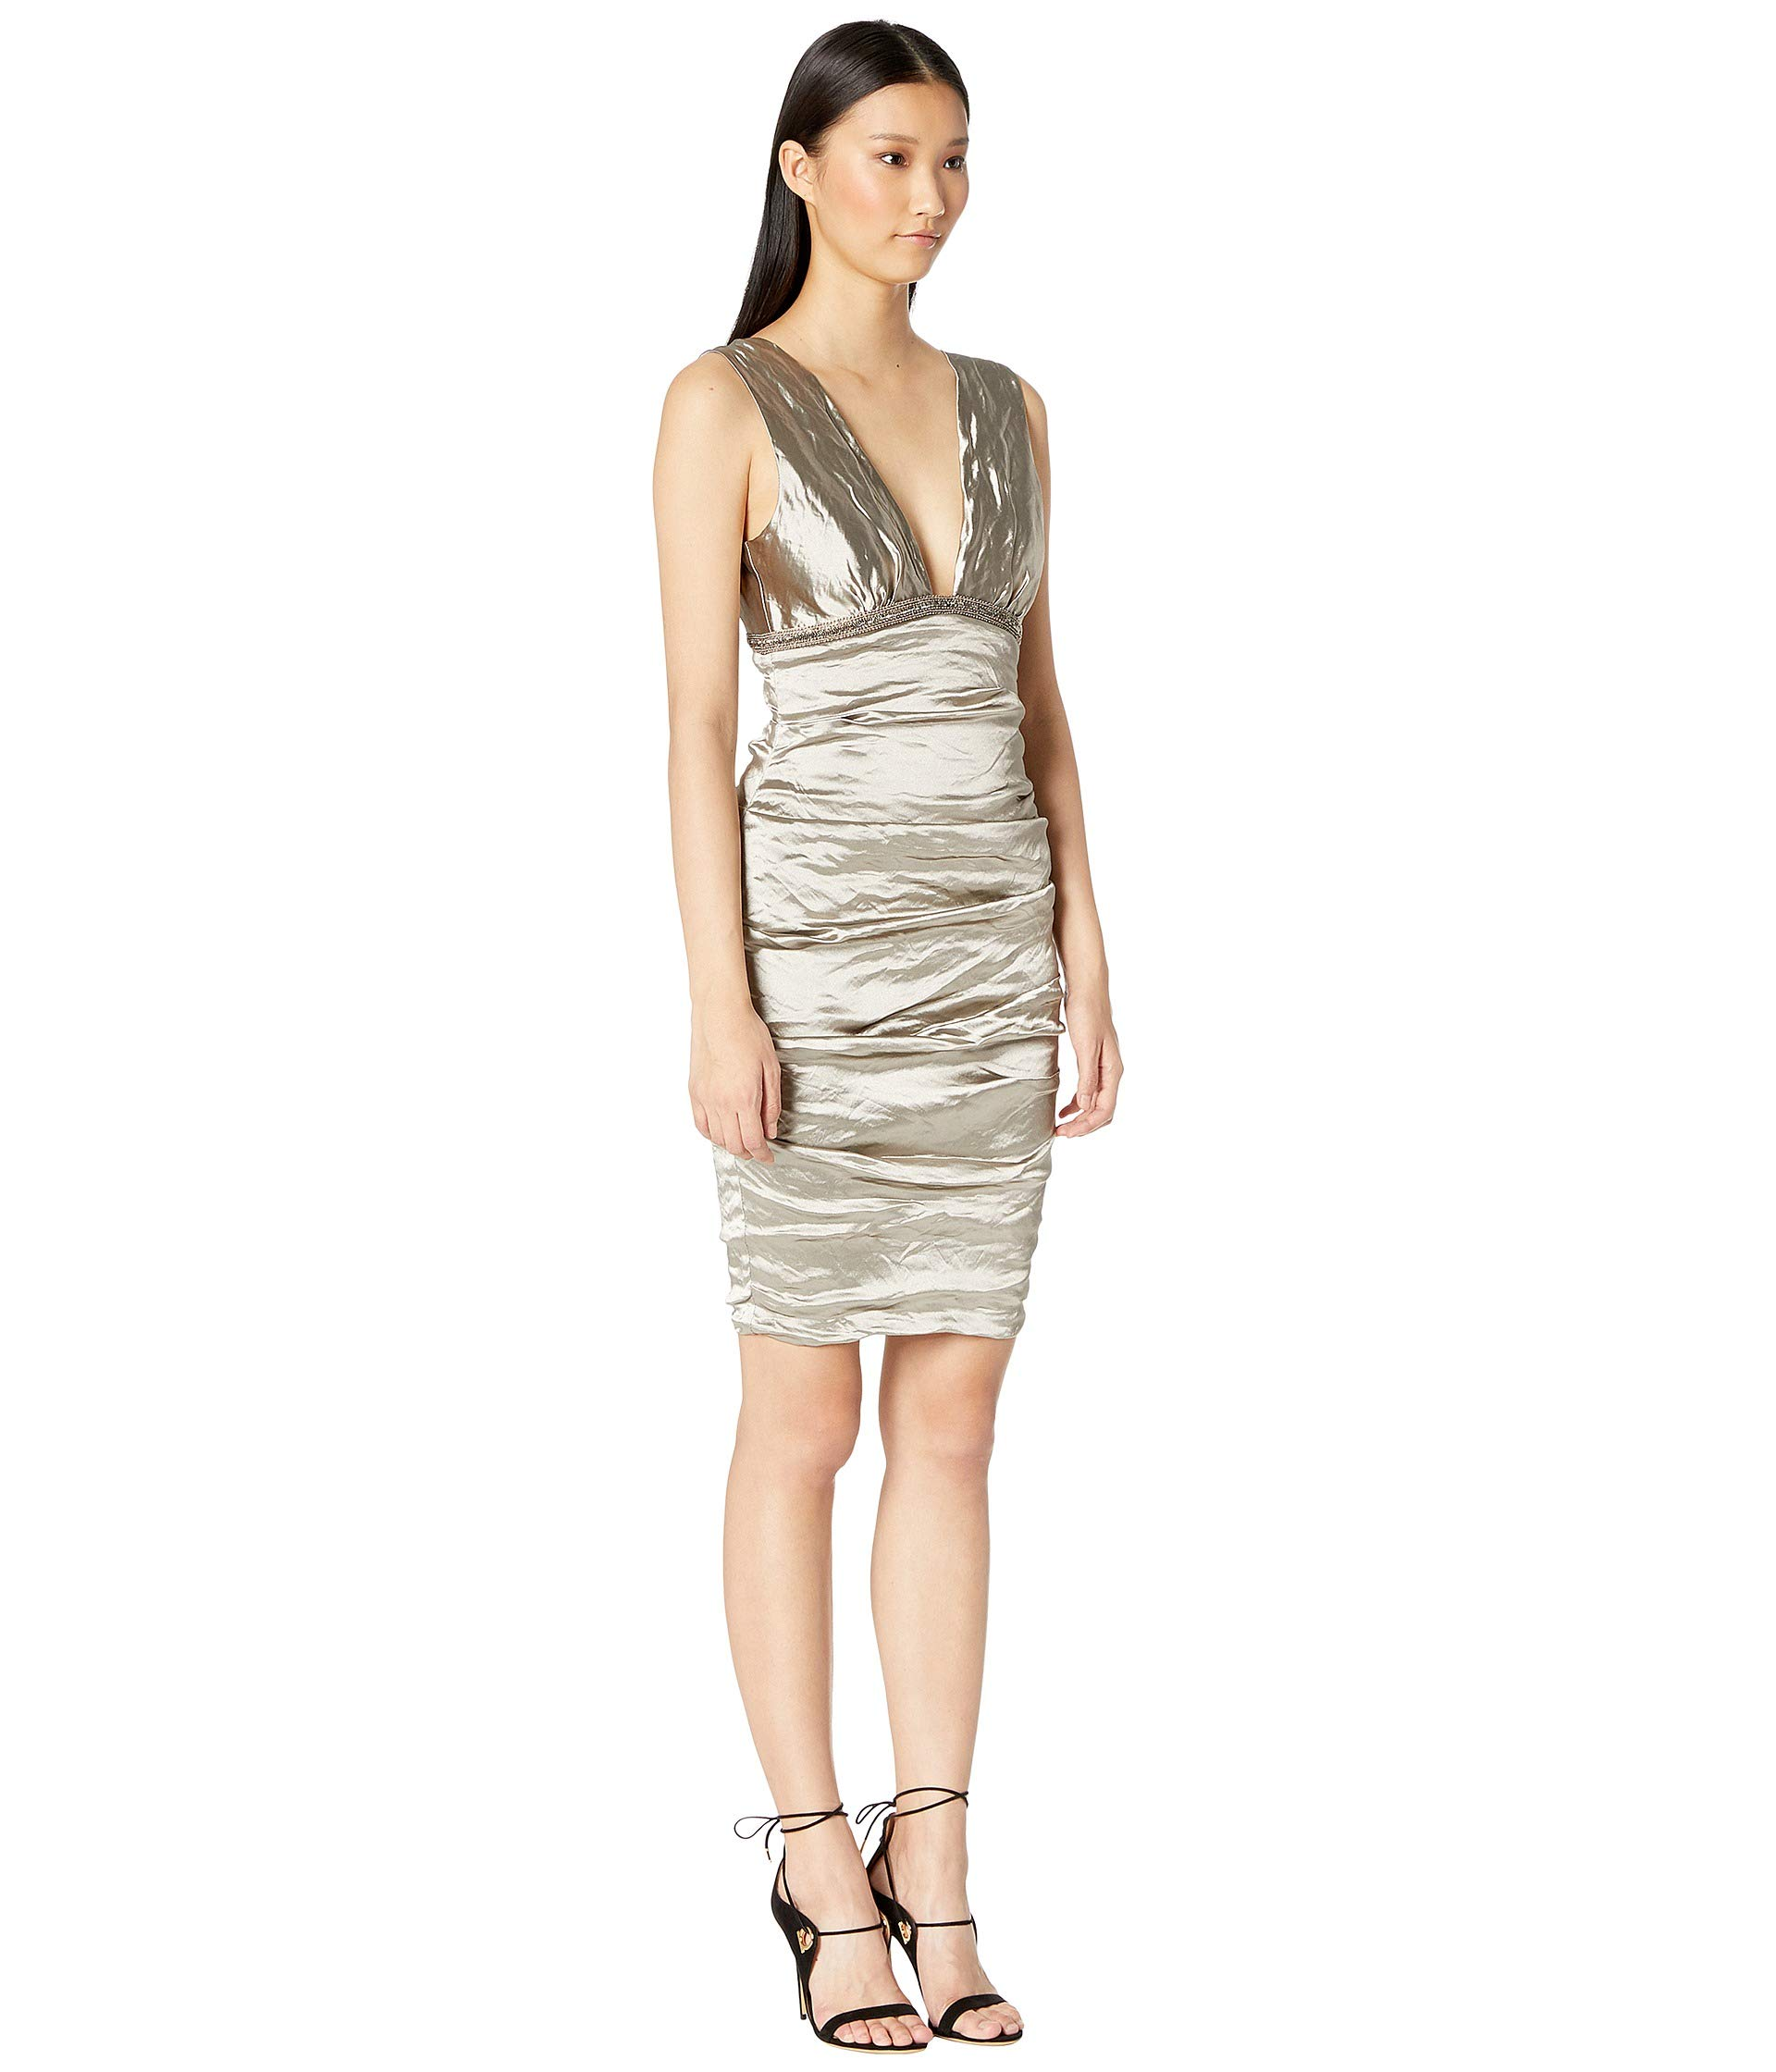 Techno Dress Cava Miller Plunge Metal Nicole 6WHq5Cn